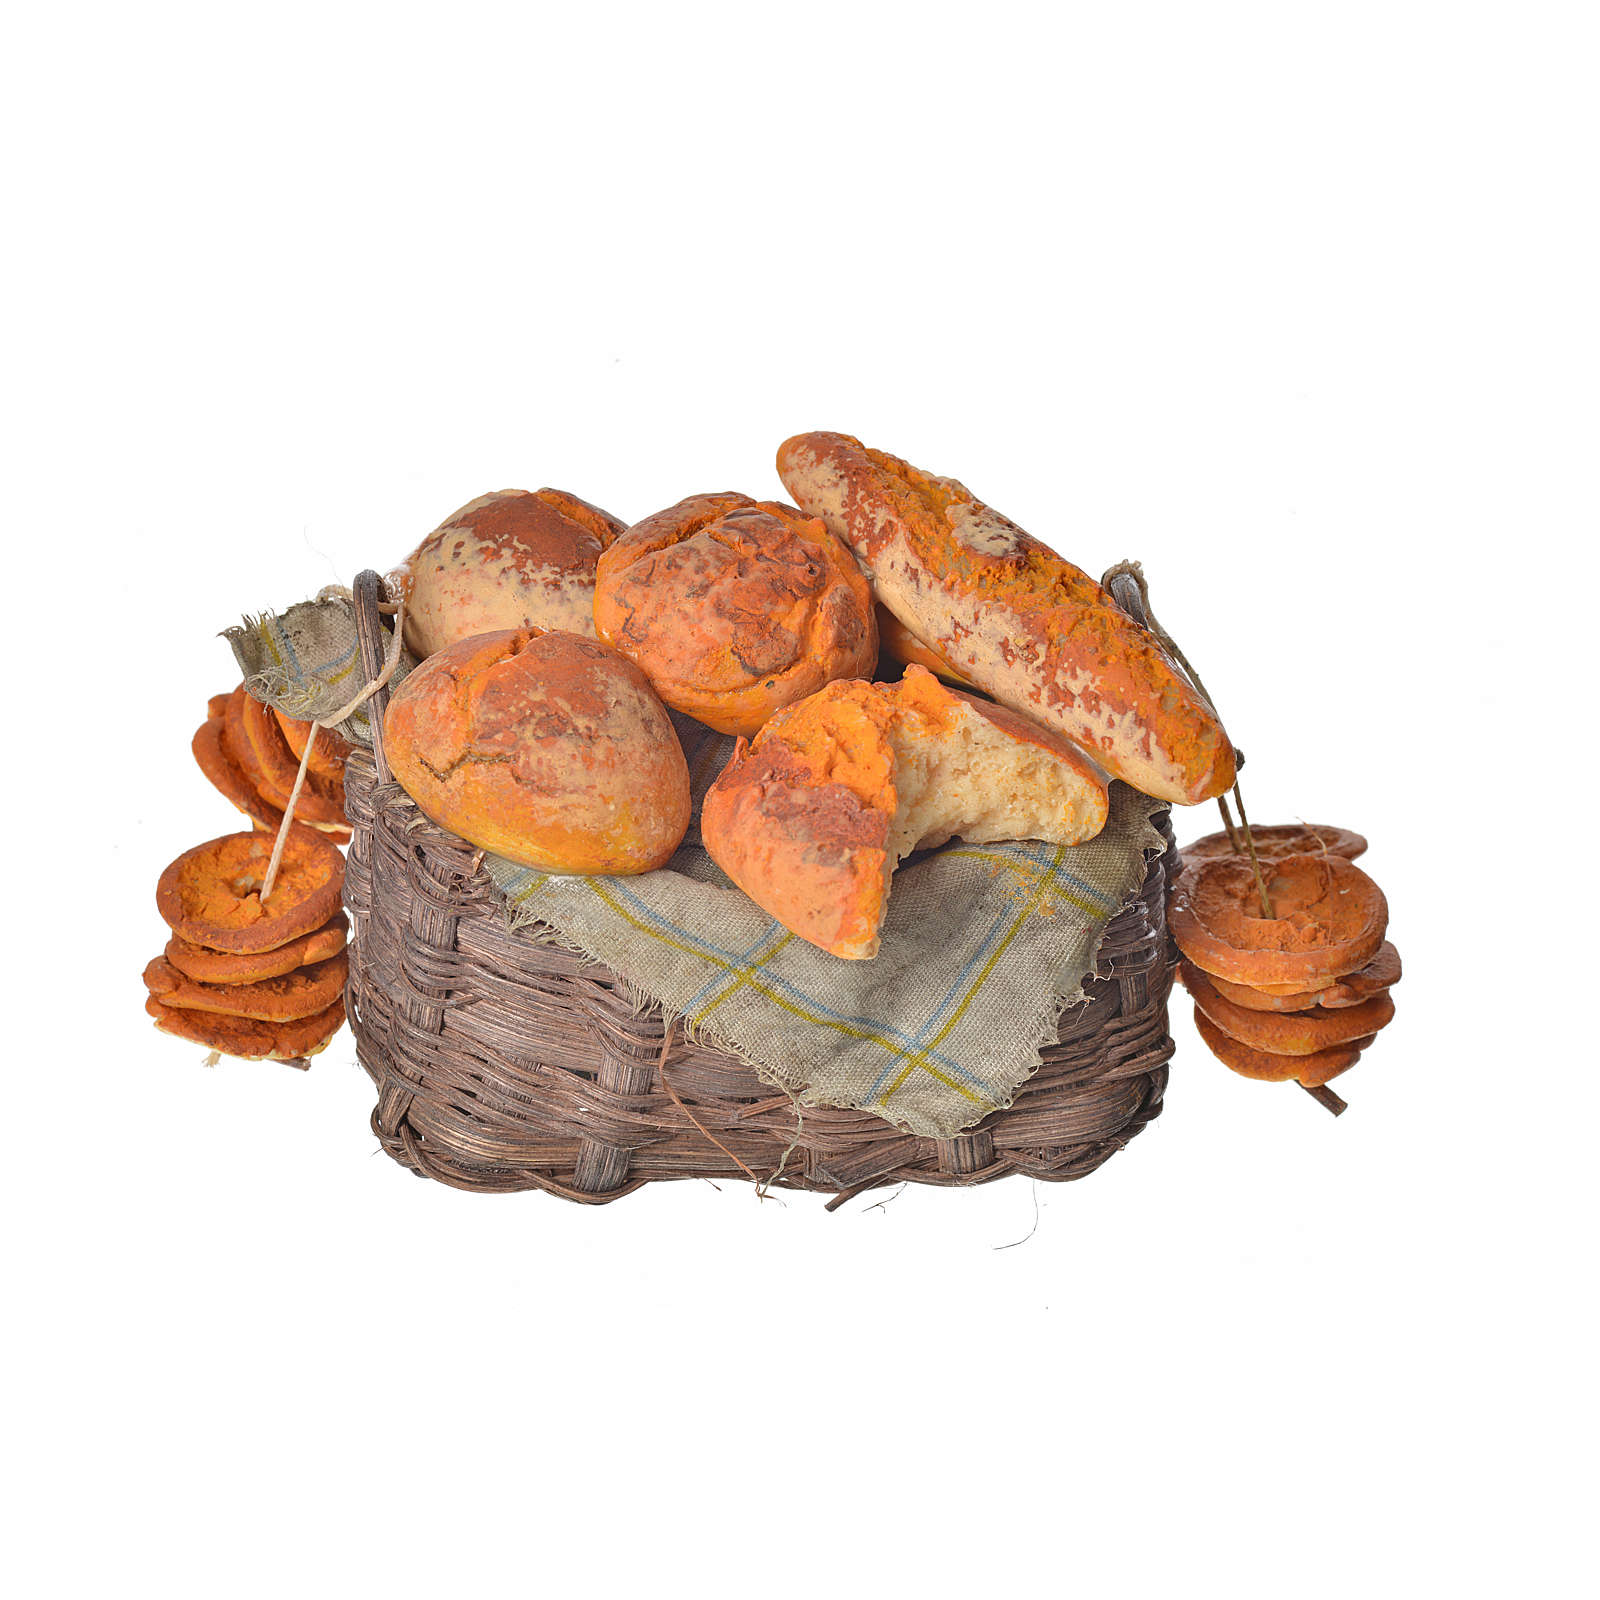 Nativity accessory, bread basket in wax, 10x7x8cm 4